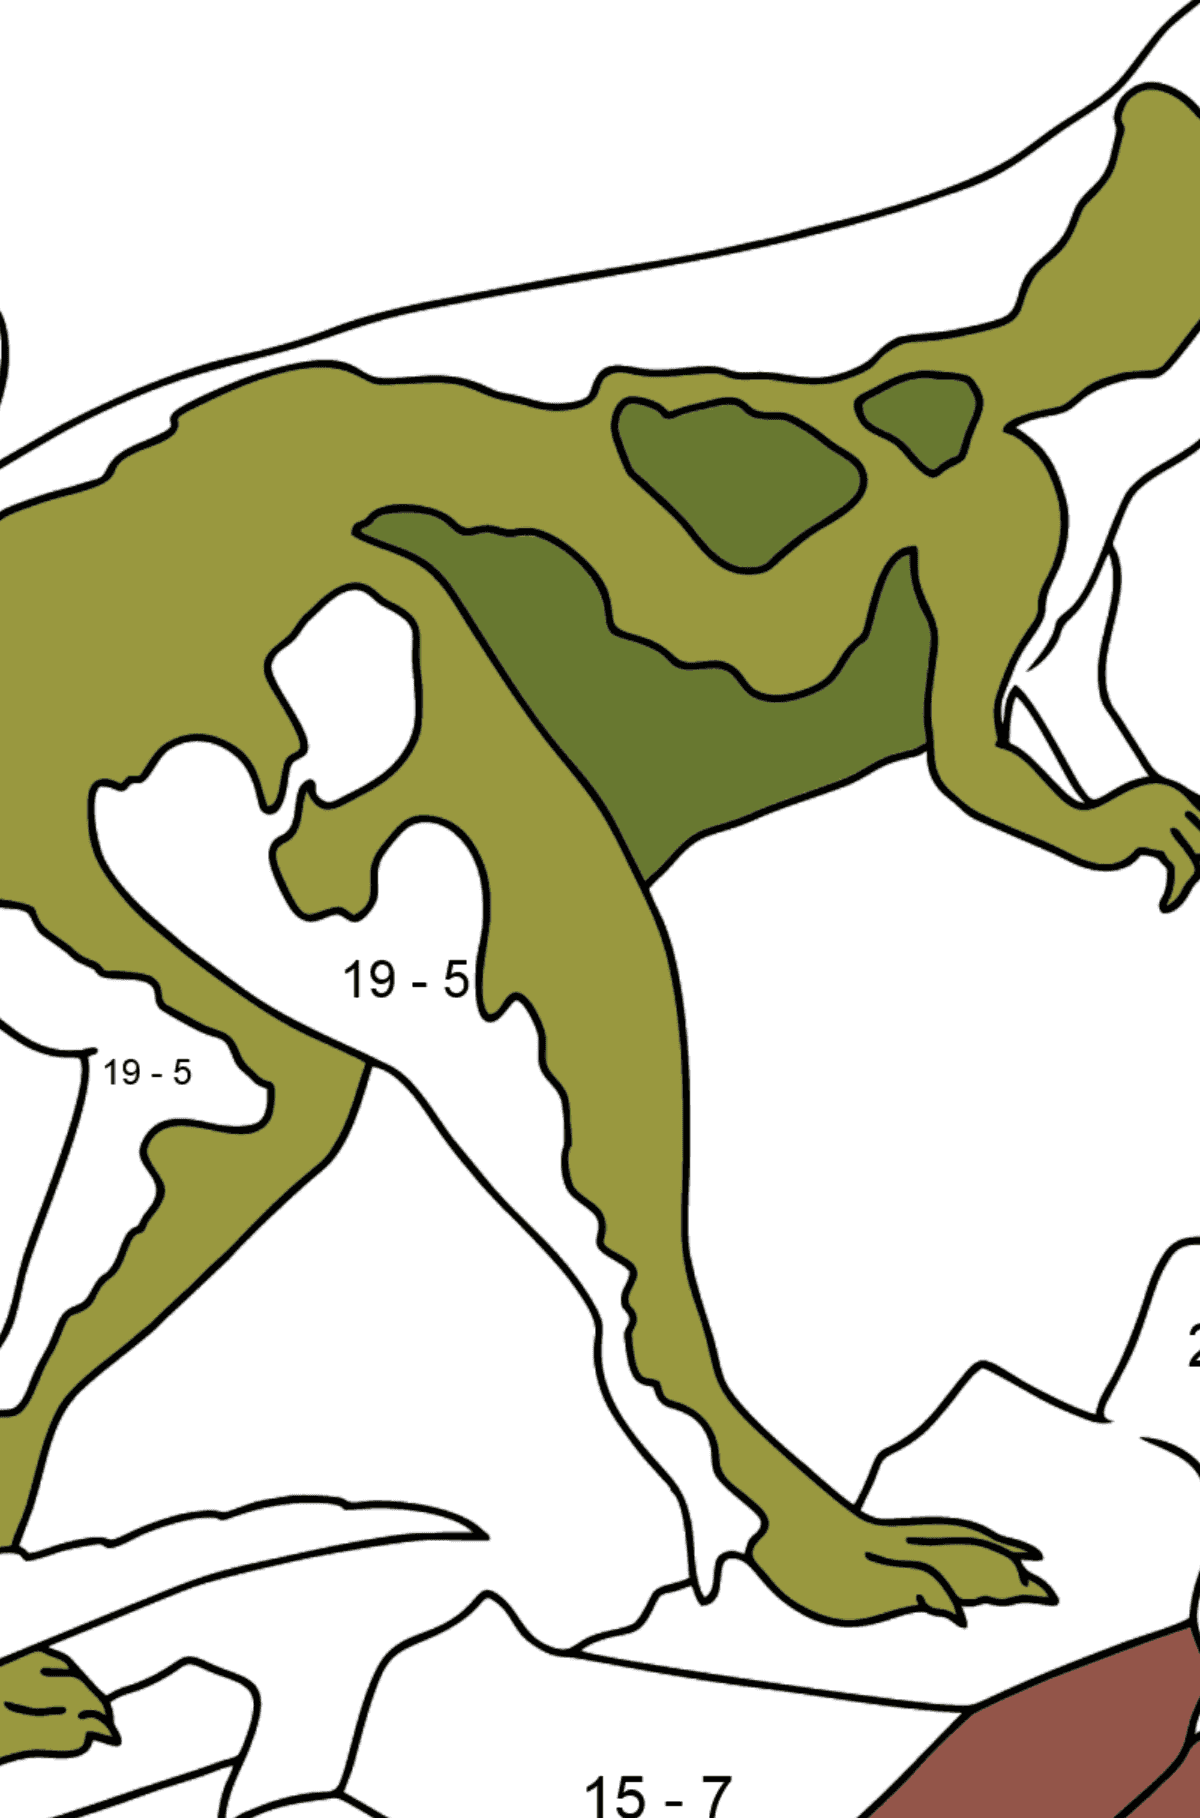 Coloring Page - Tyrannosaurus - The Cruelest Dinosaur - Math Coloring - Subtraction for Kids